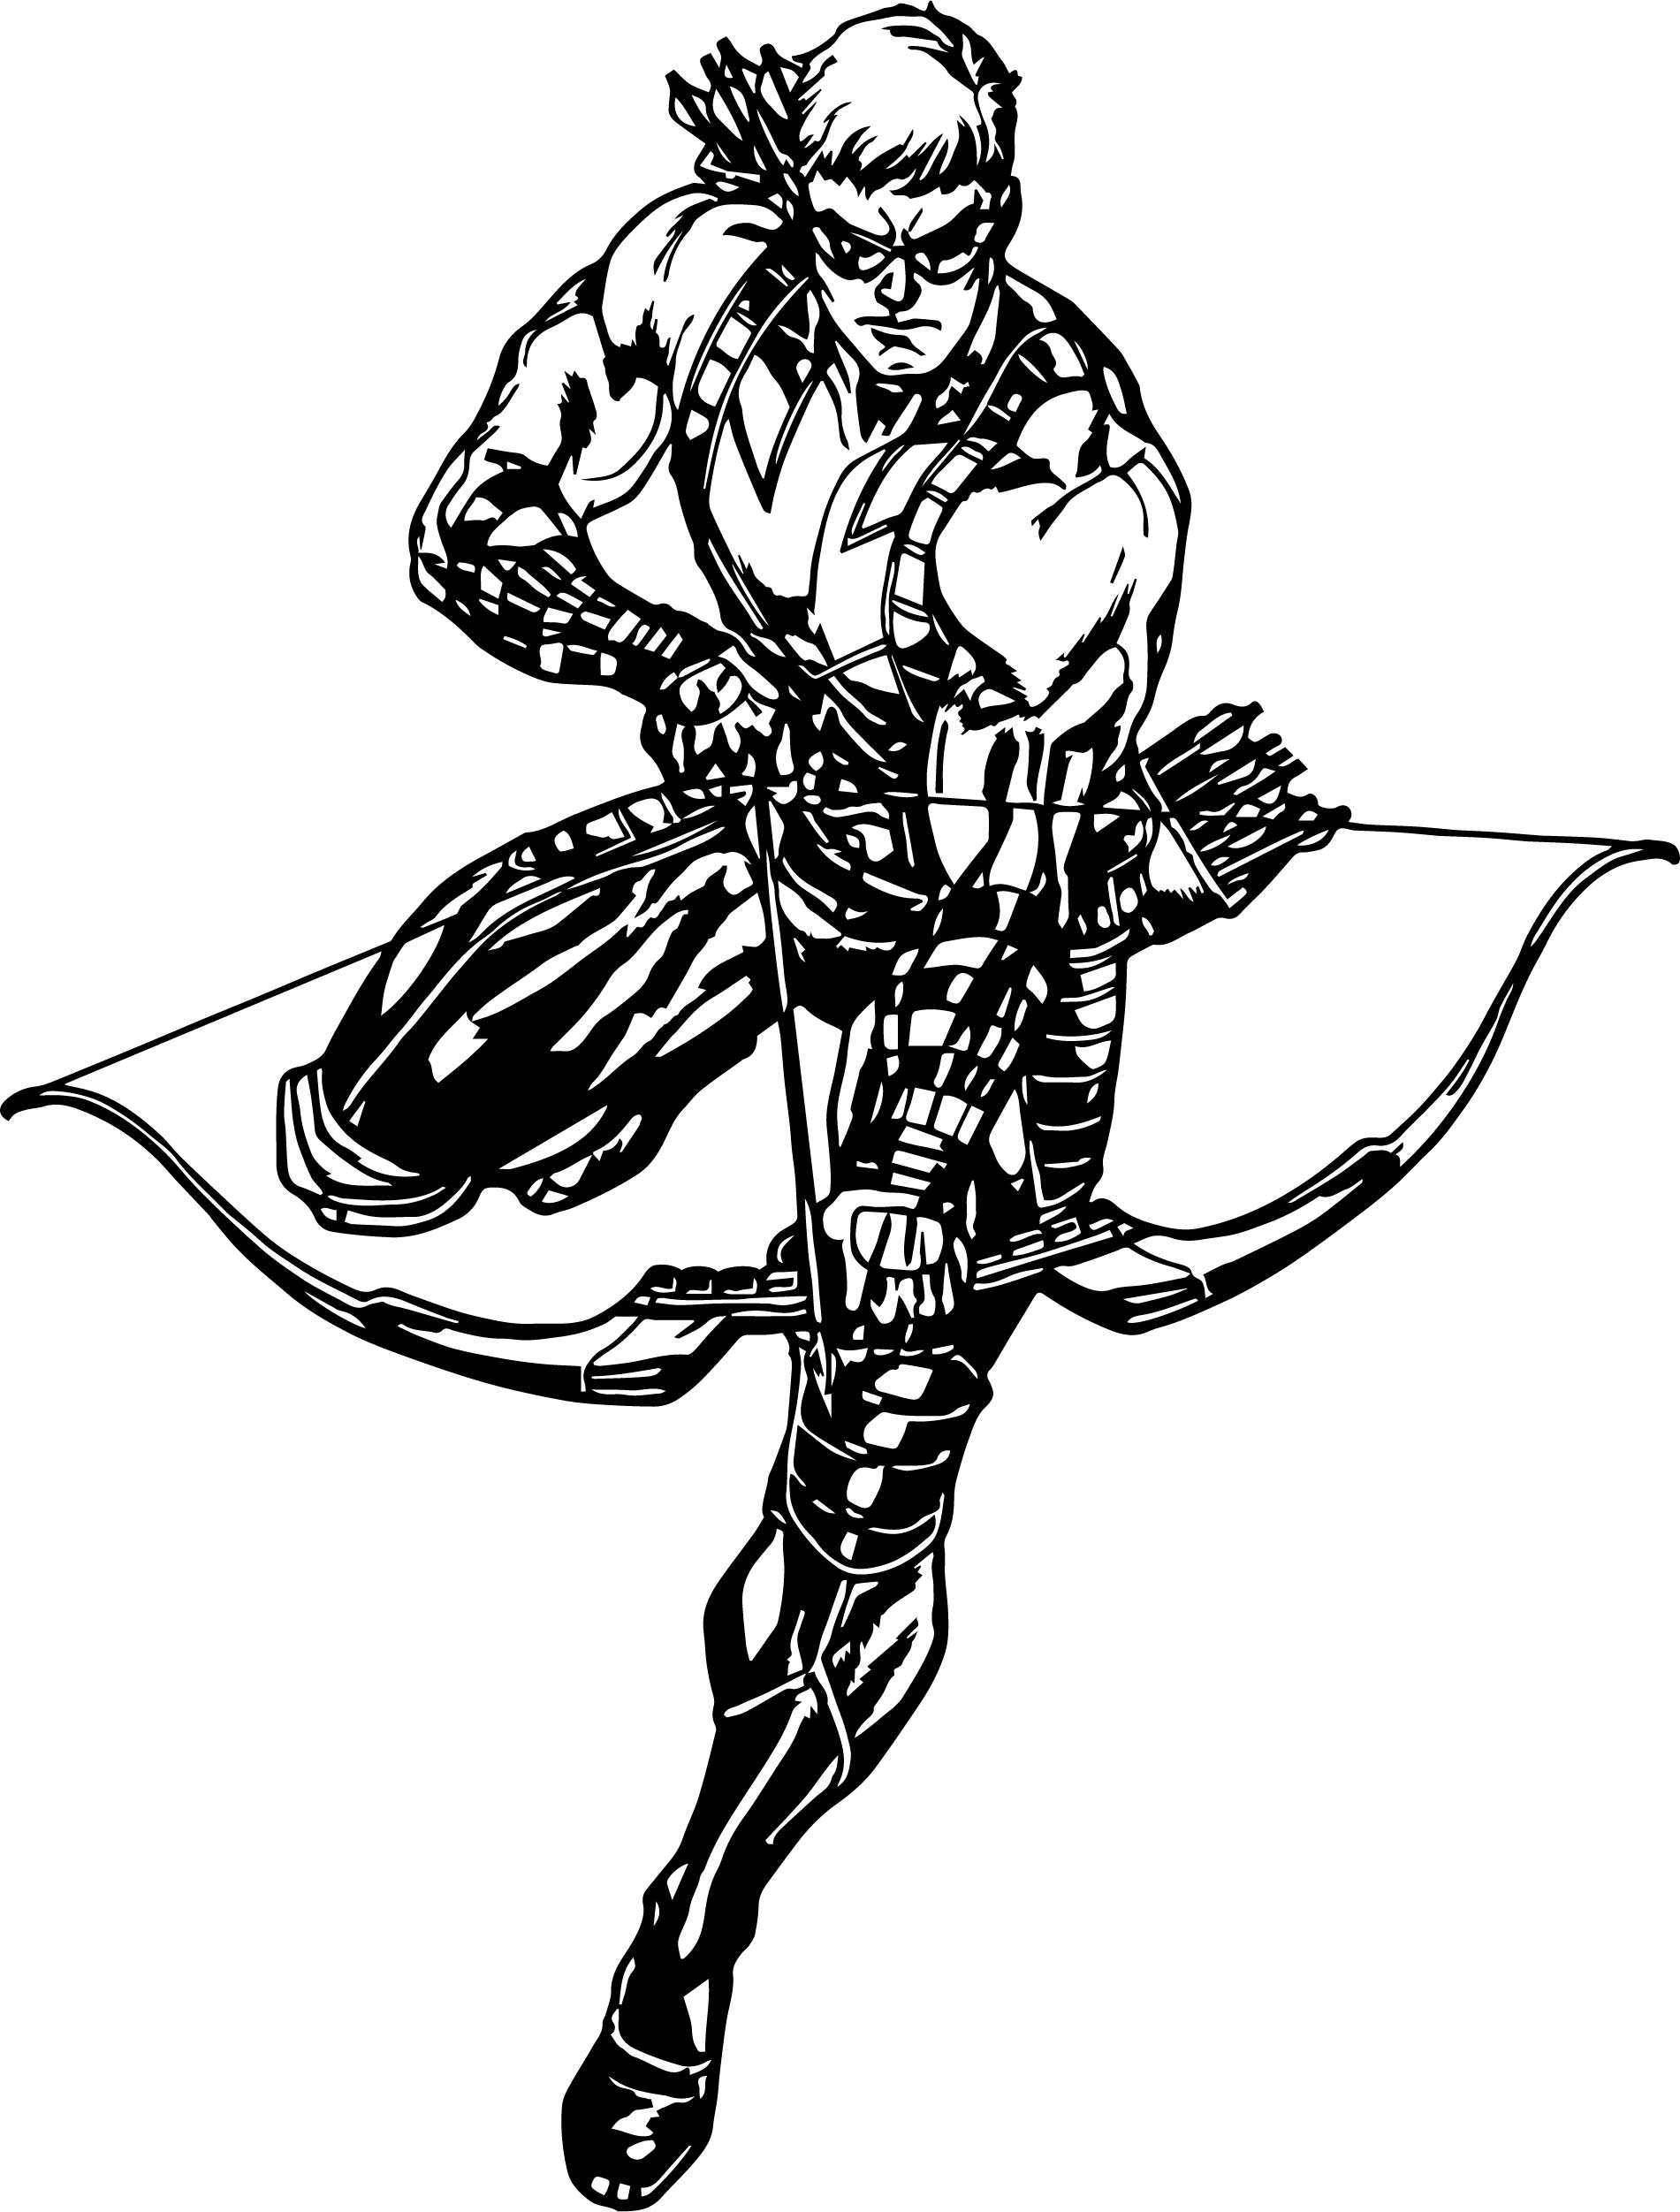 Hawkeye Avengers Assemble Coloring Page